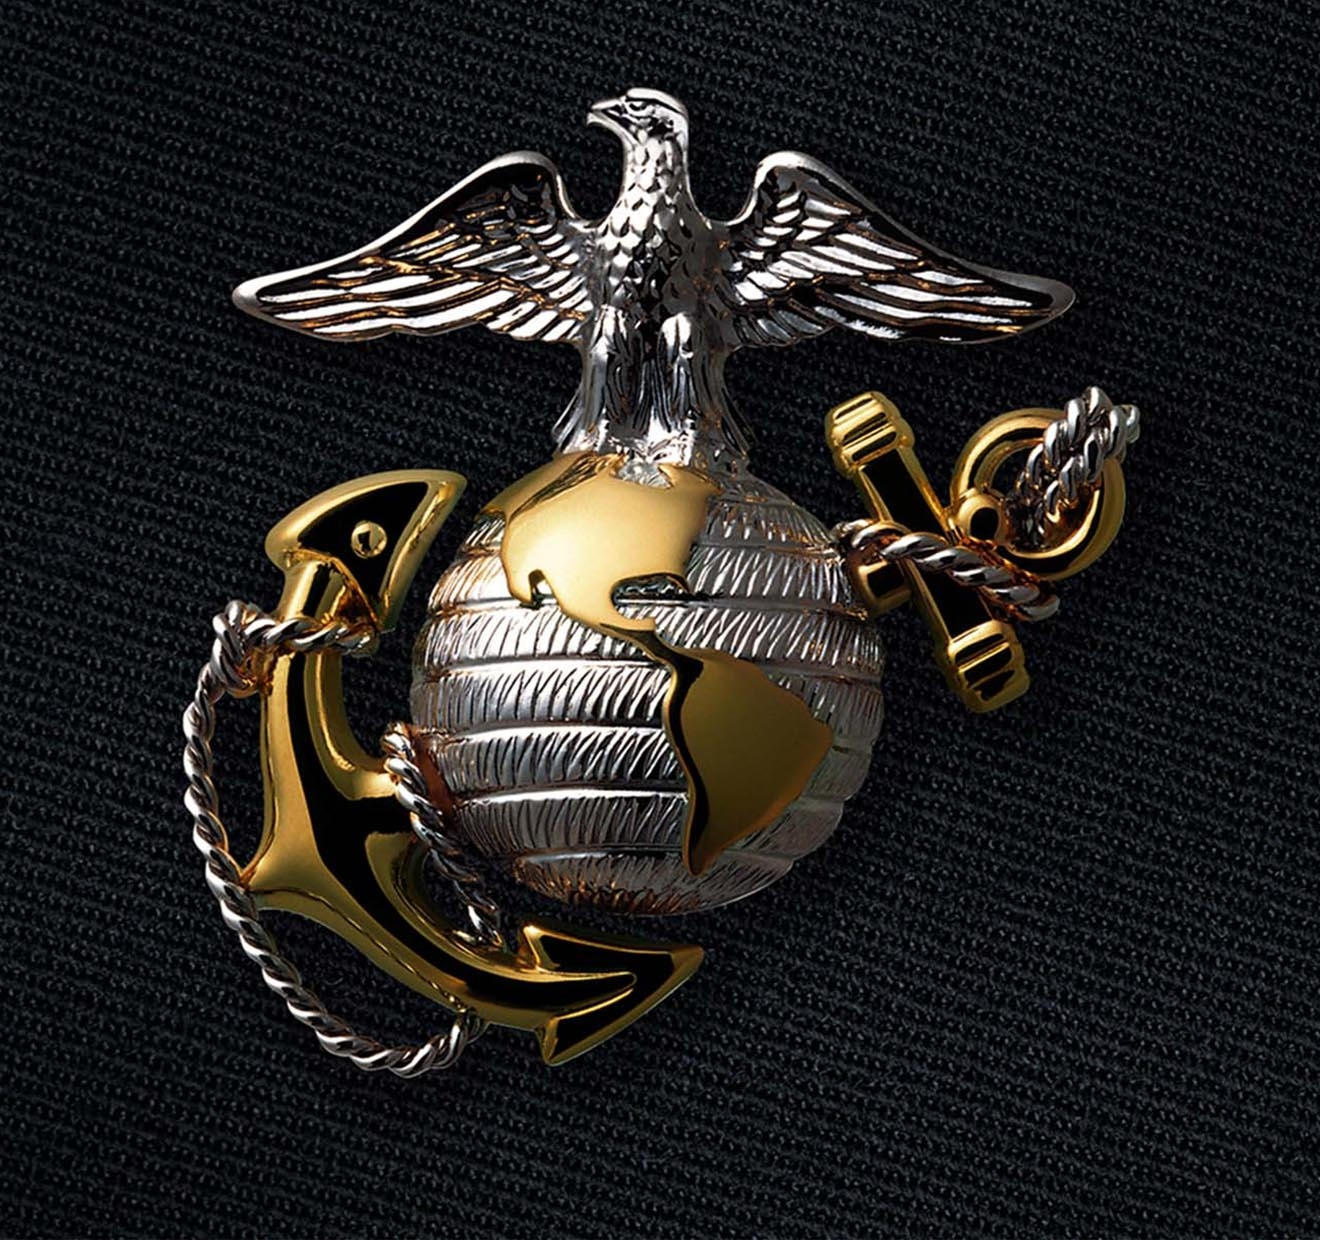 The Eagle Globe And Anchor Emblem Of A Marine Officer